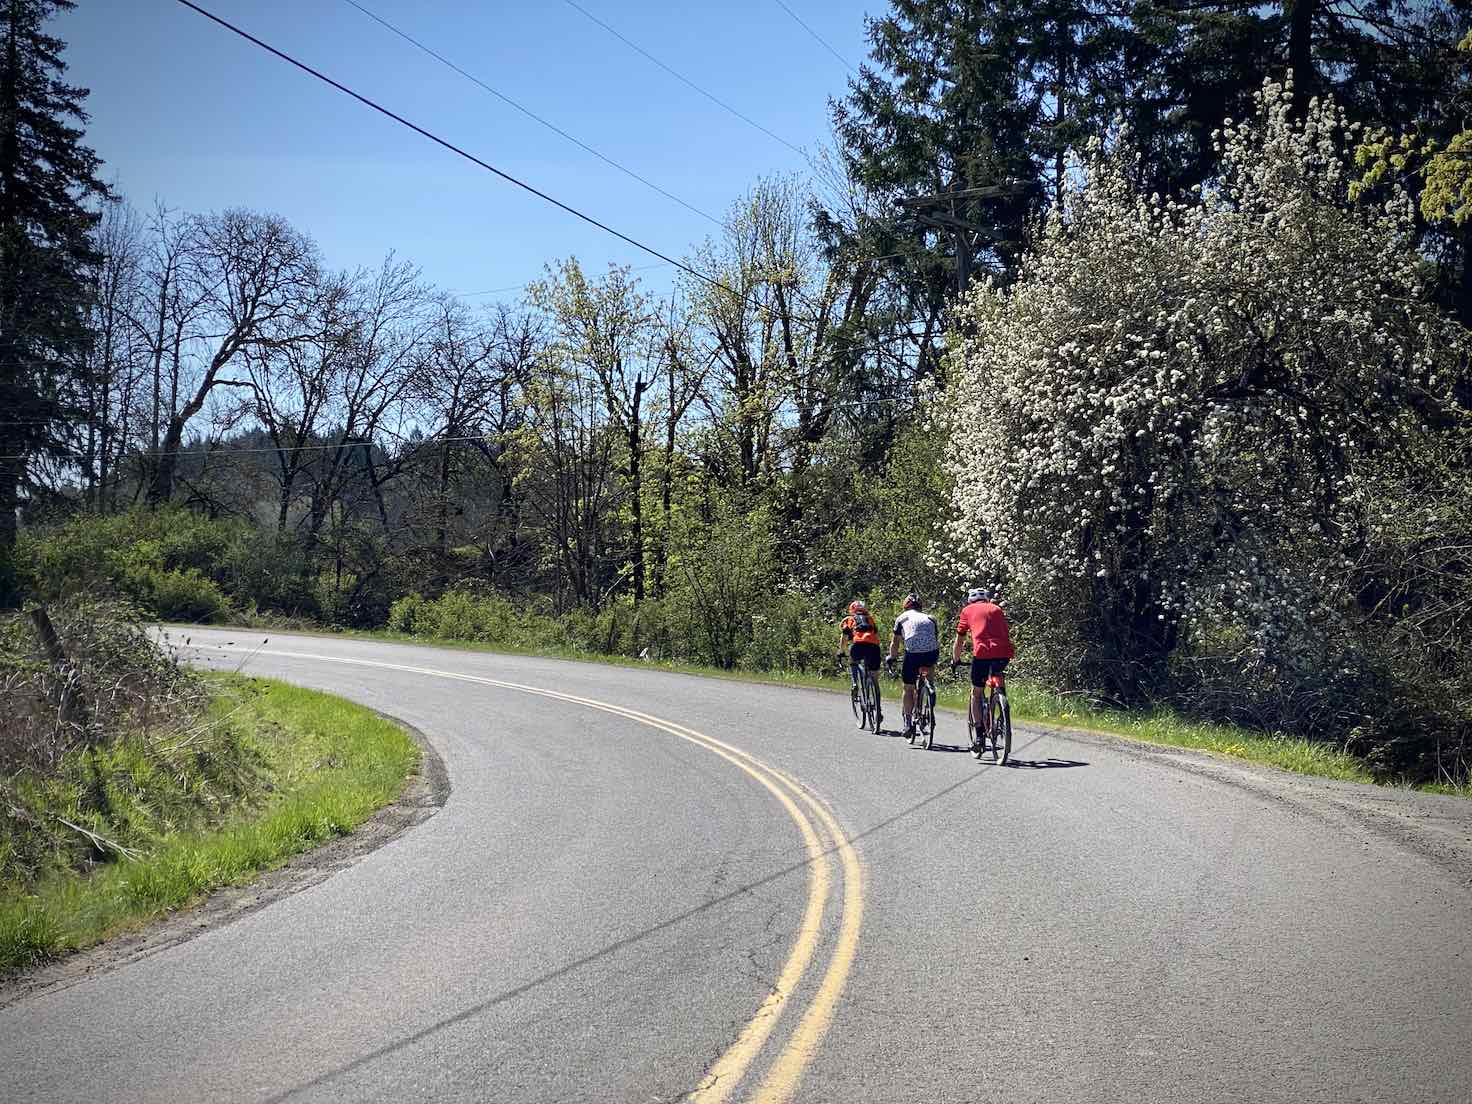 Cyclists on a paved road in the outskirts of Yamhill.